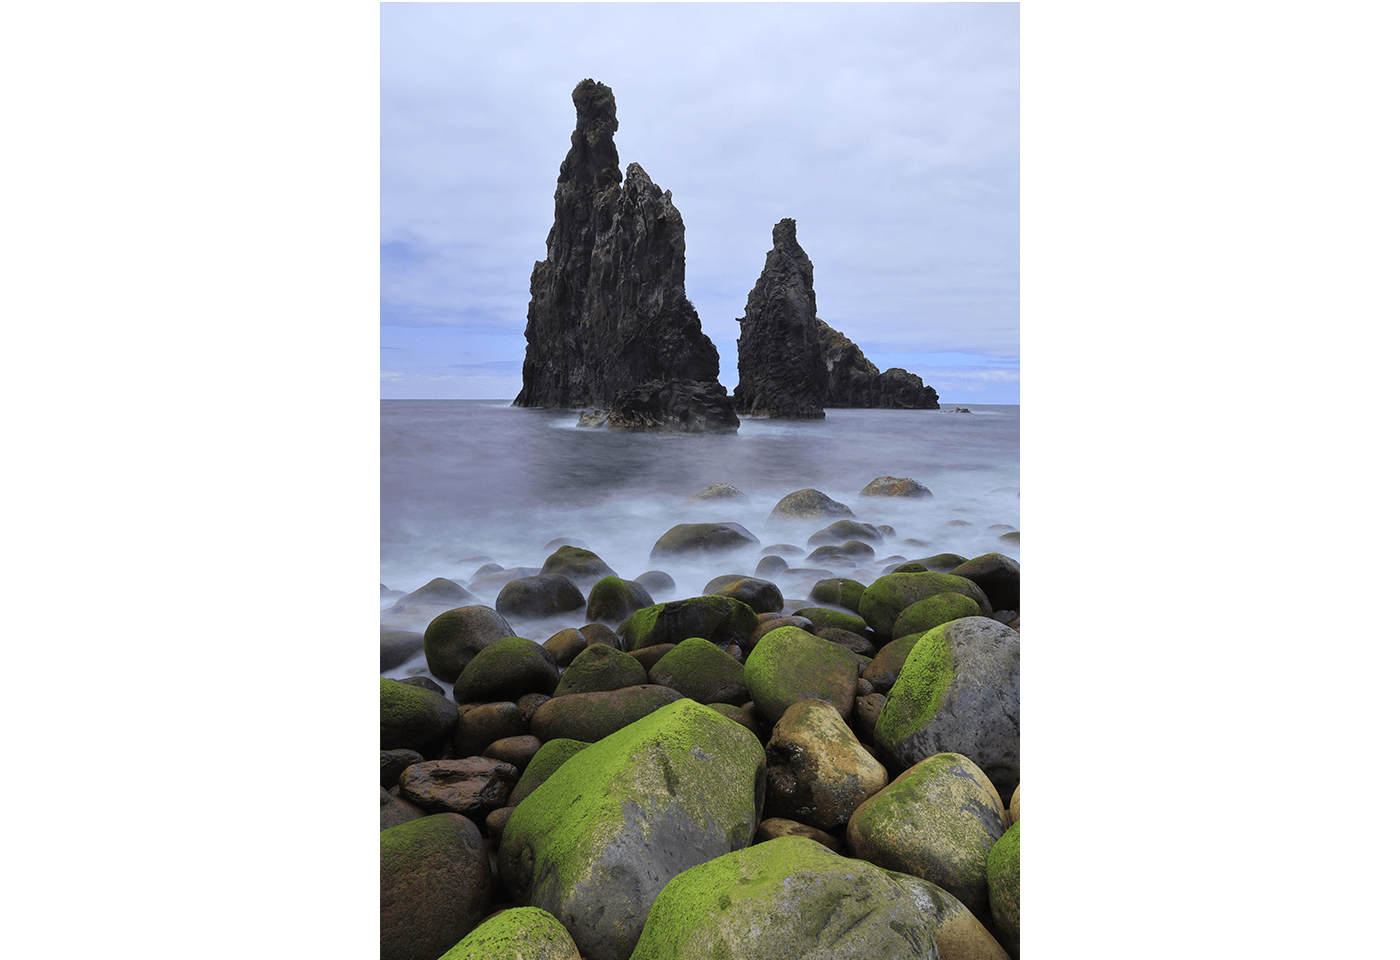 Photograph of rocks and ocean taken using Product image of Drop-in Filter Mount Adapter EF-EOS R and lens